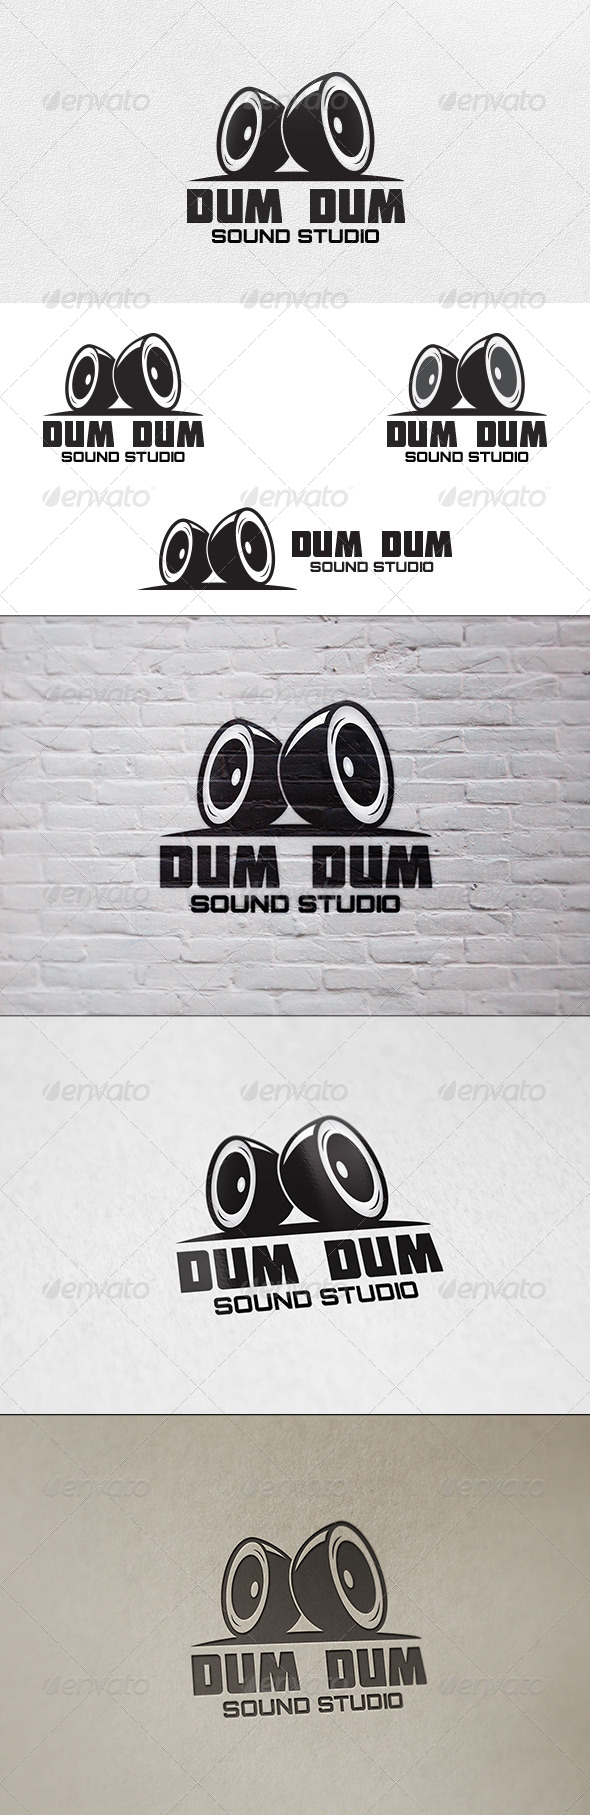 Sound Studio - Logo Template - Objects Logo Templates